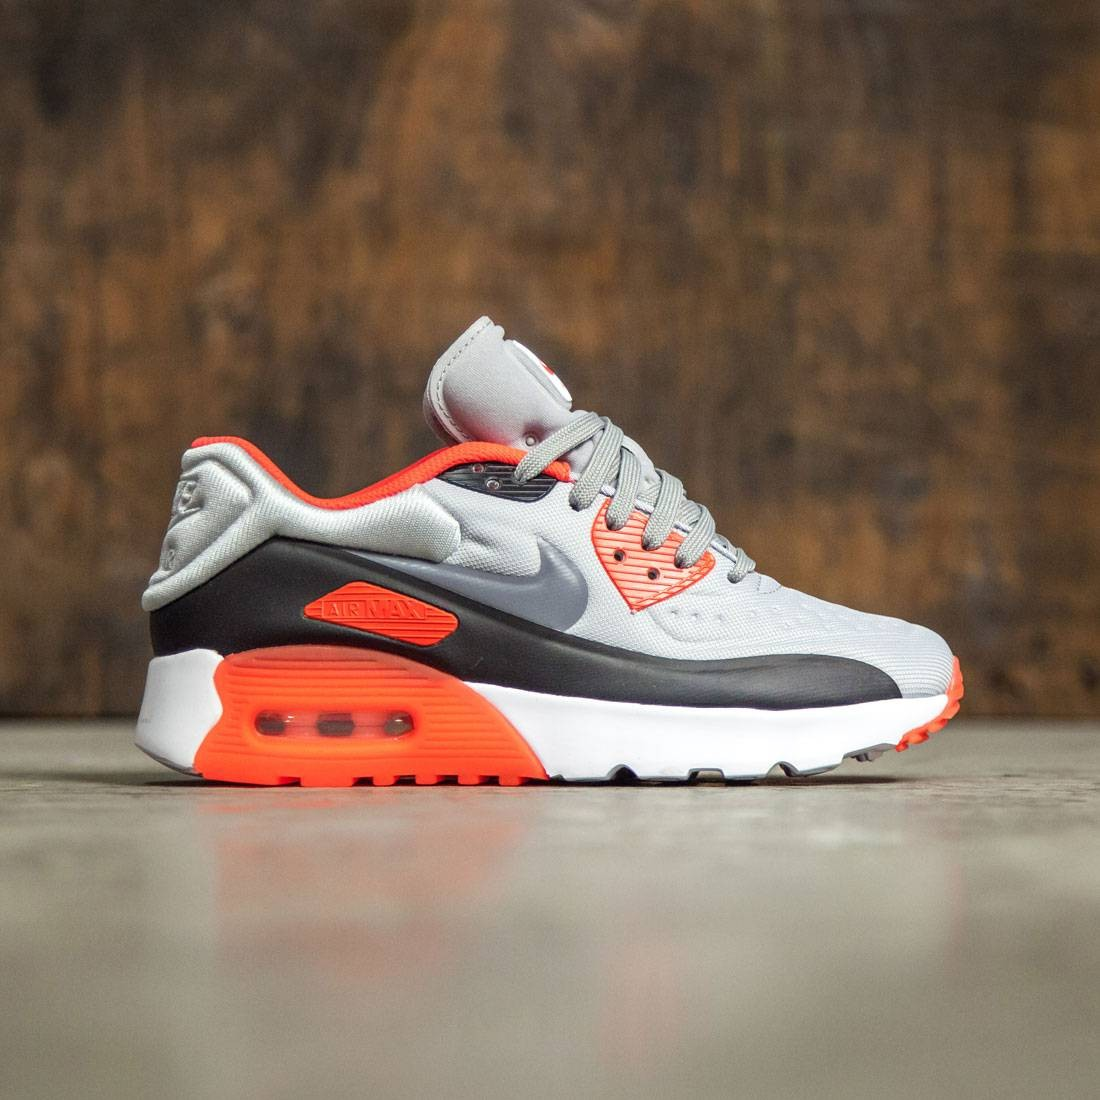 newest e7586 a1257 Nike Big Kids Nike Air Max 90 Ultra Se (Gs) (wolf grey   cool grey-bright  crimson-black)